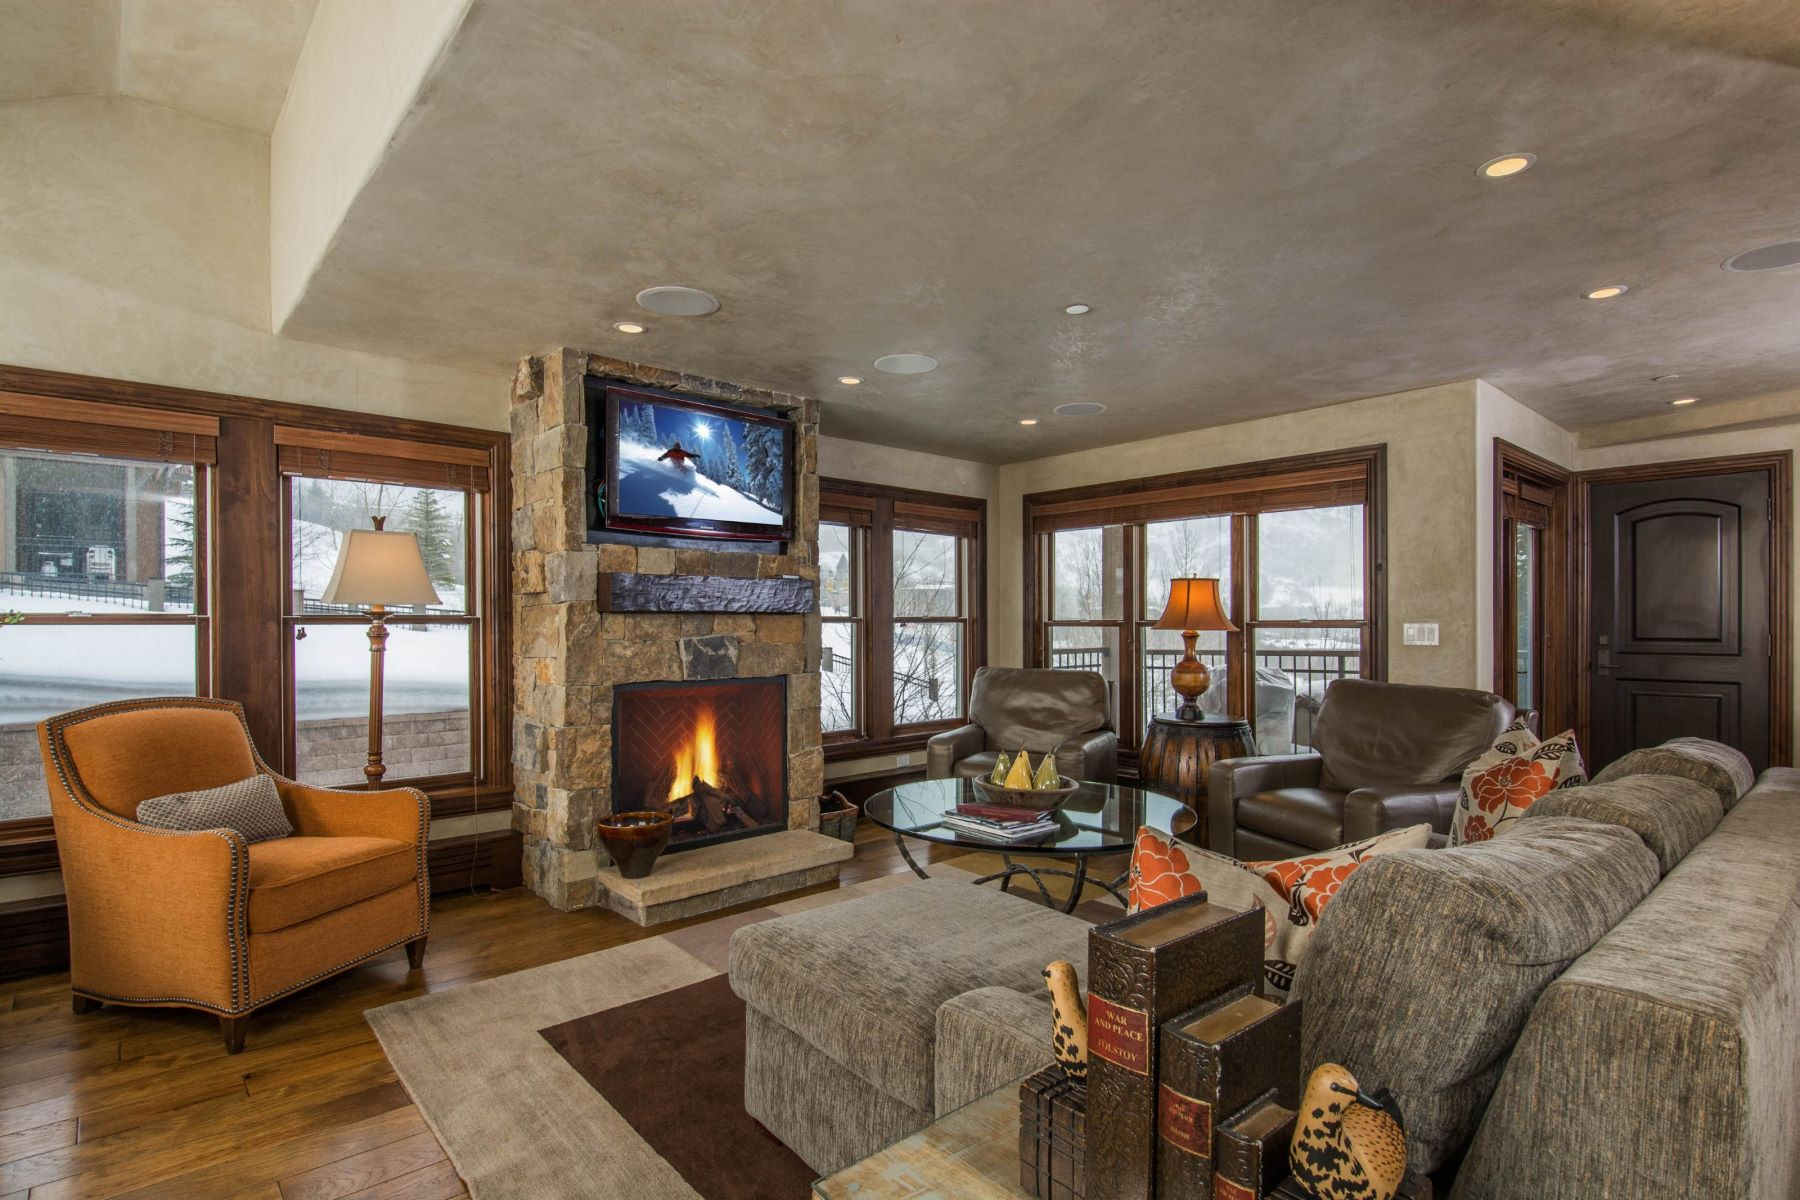 Condominium for Sale at As Nice as They Come! 425 Wood Road Unit 41 Snowmass, Colorado, 81615 United States